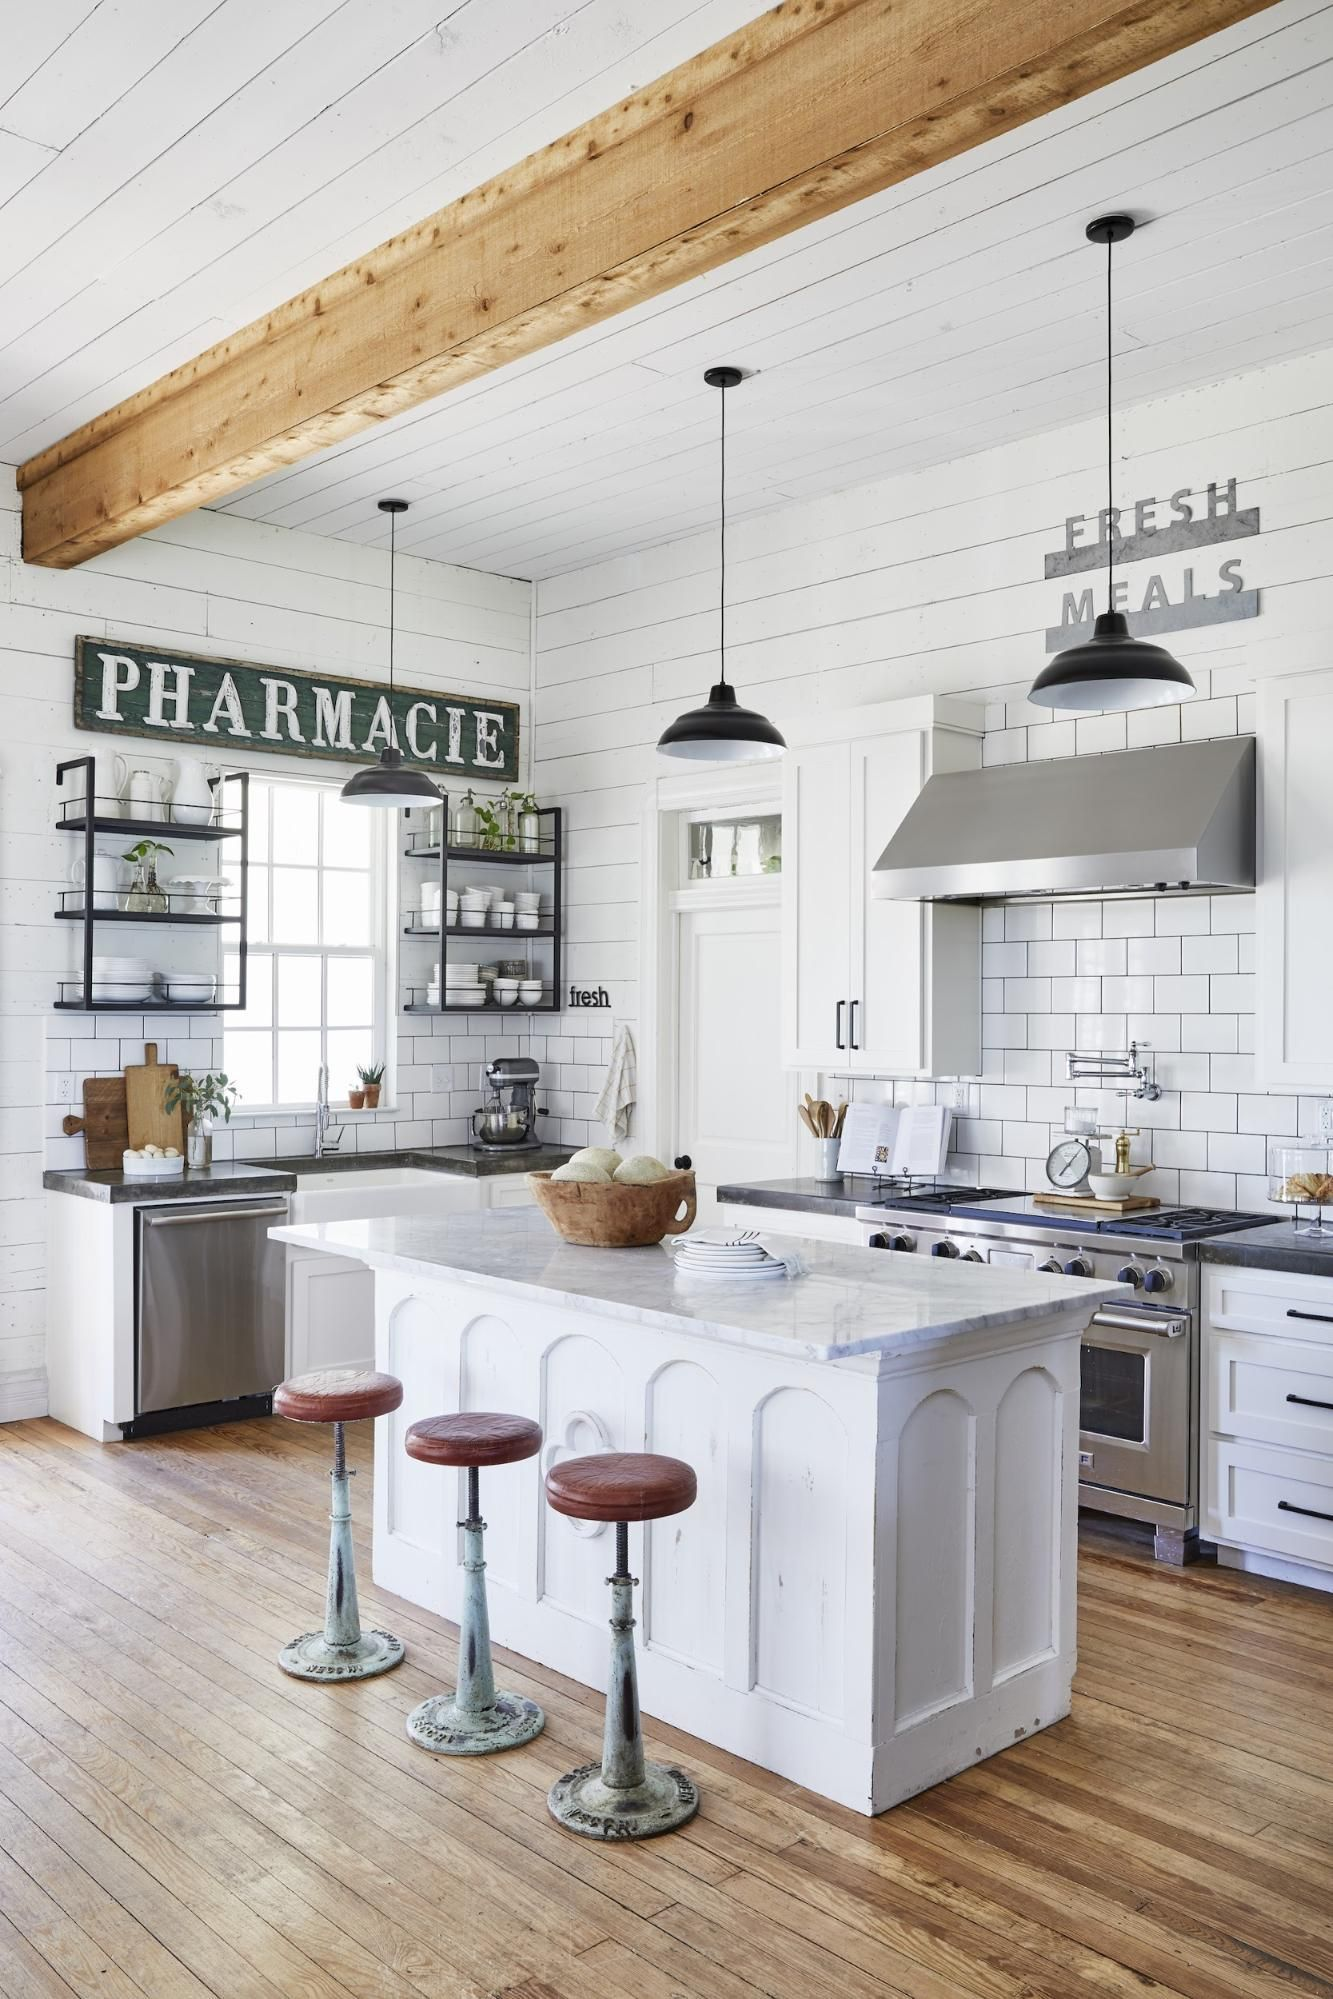 A Technical Guide To Open Shelving Magnolia In 2020 Joanna Gaines Kitchen Kitchen Style Modern Farmhouse Kitchens